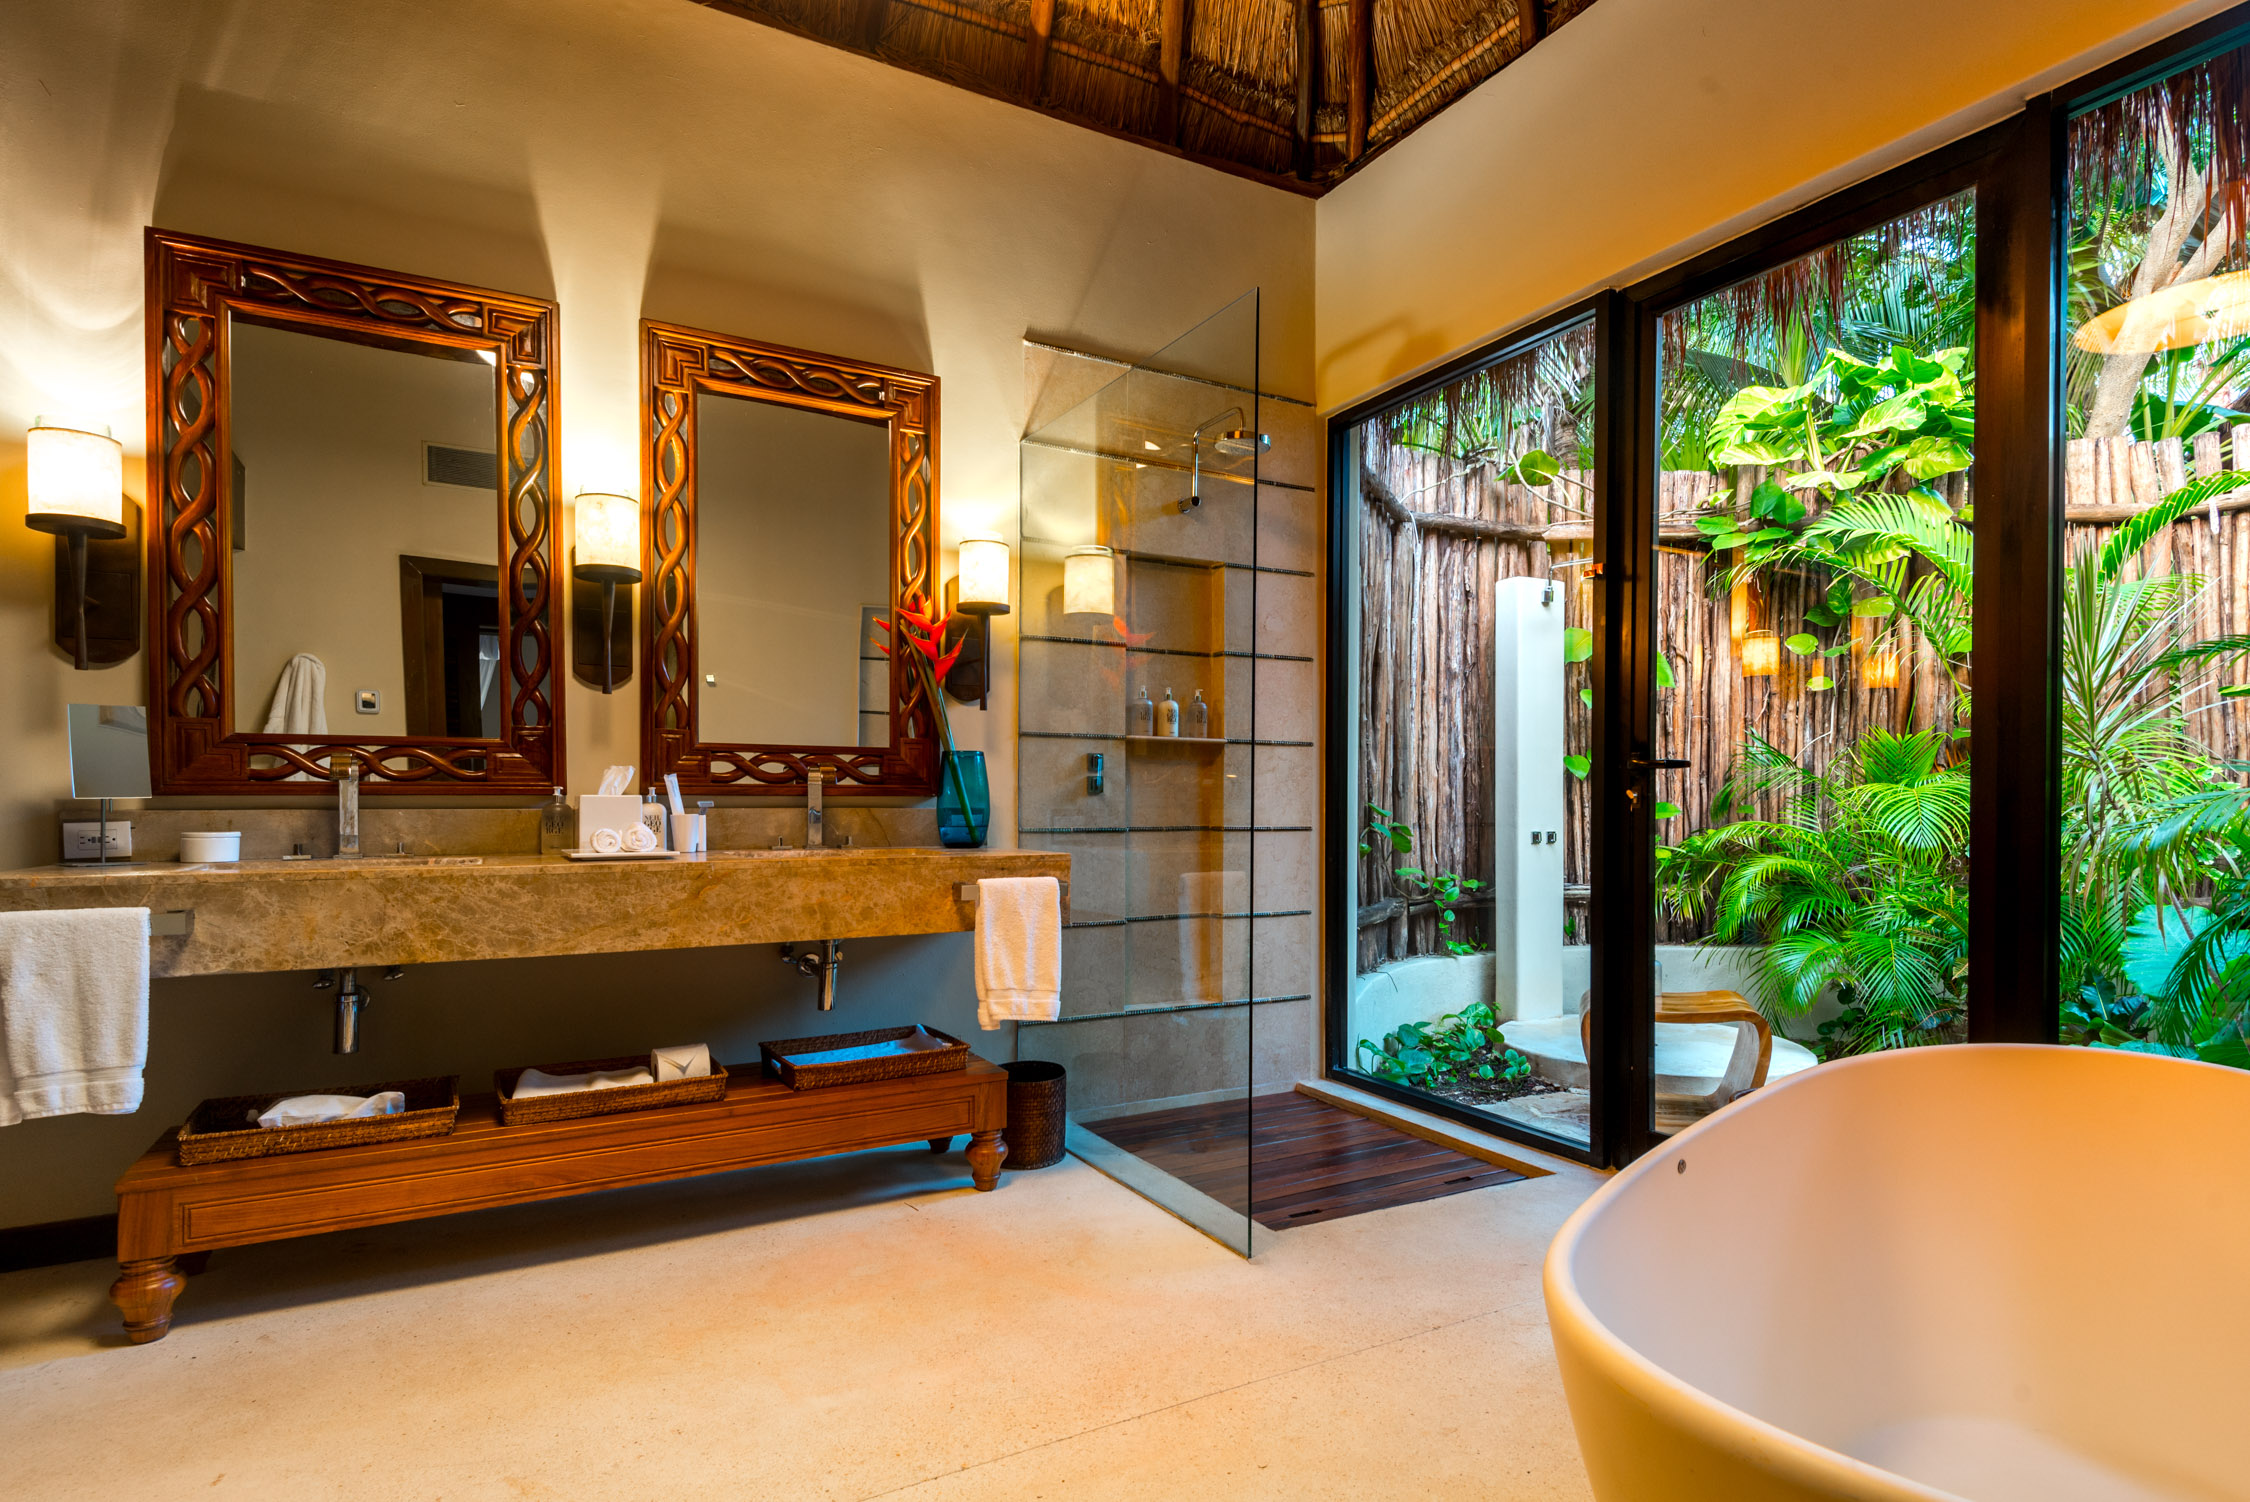 Usually the bedroom is my favorite part at a hotel - but at the Viceroy, Riviera Maya, it's definitely the bathroom!